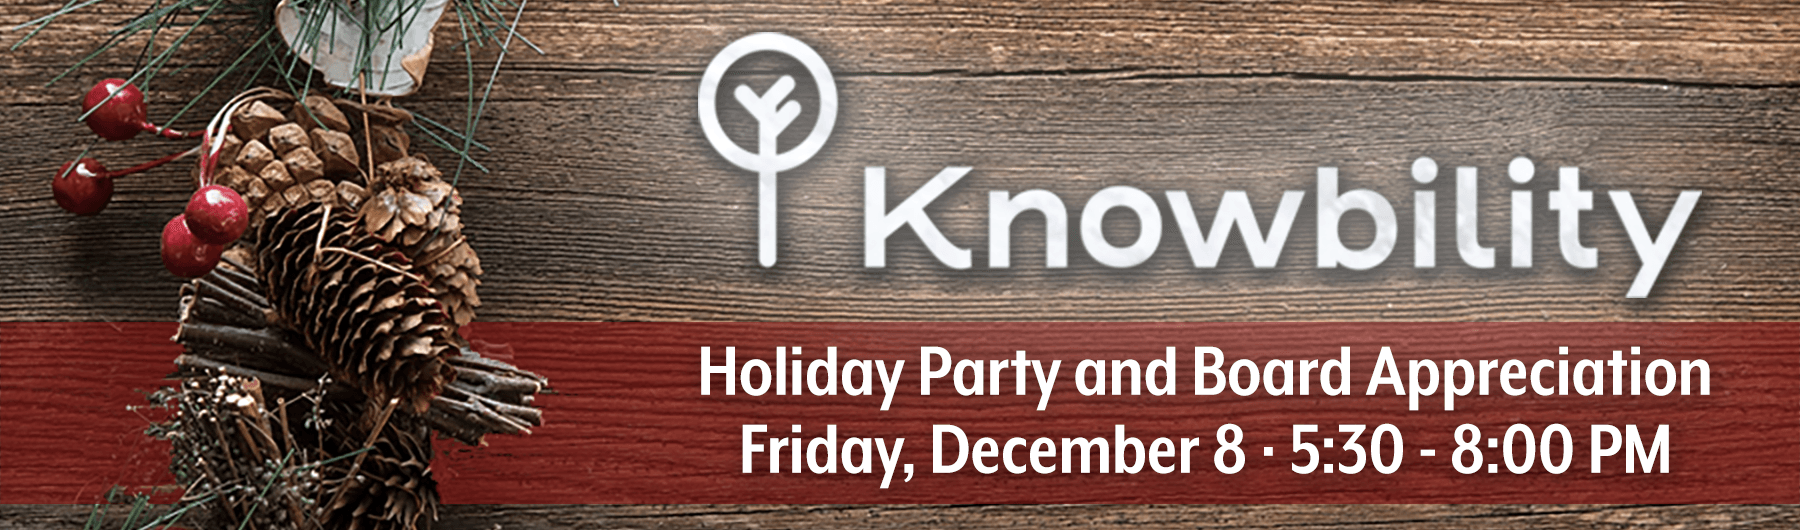 Knowbility Board Appreciation & Holiday Party 2017